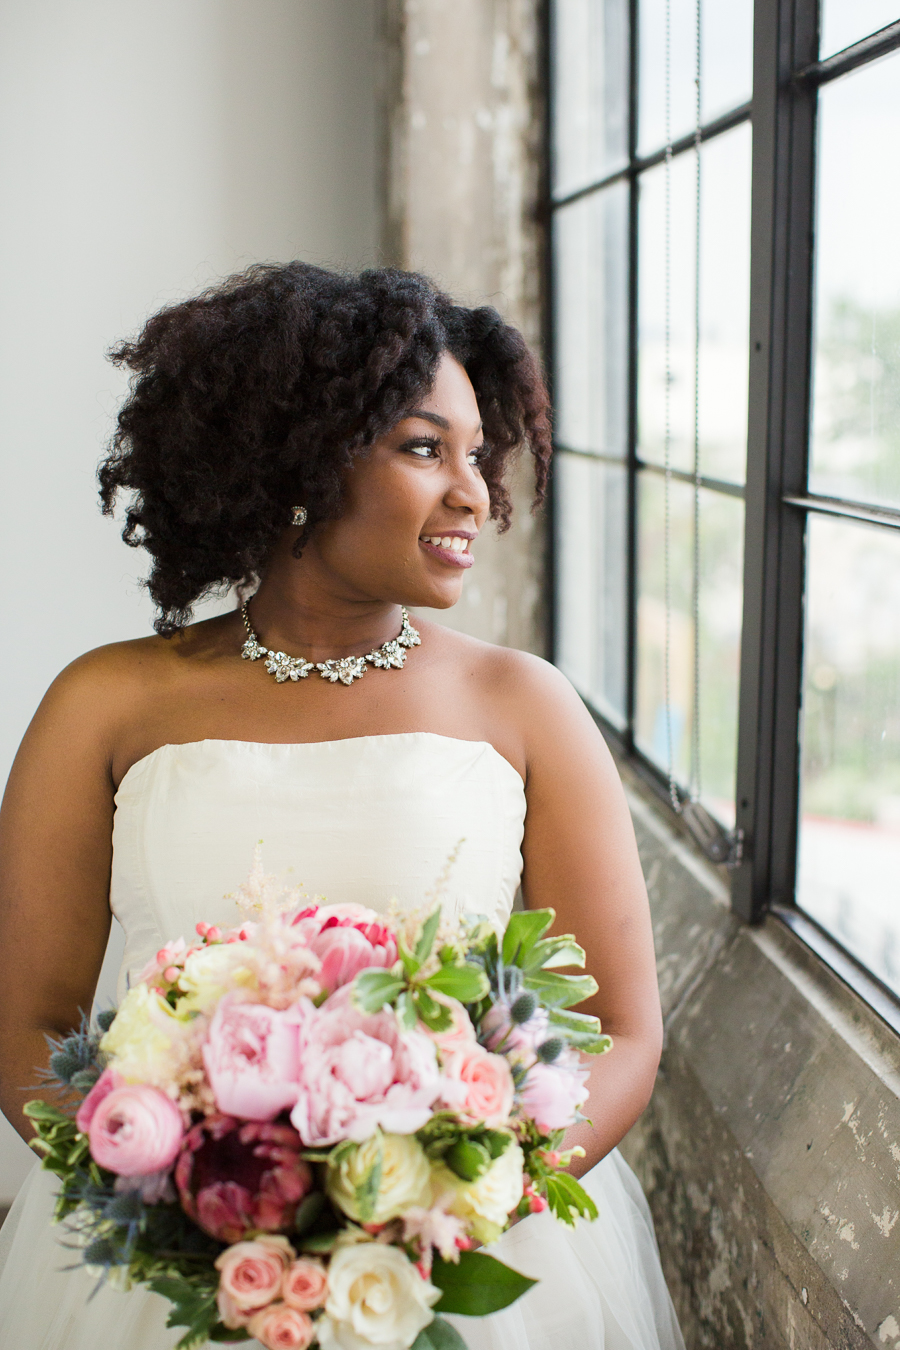 Gorgeous African American bride, wedding hairstyle and a colorful floral bouquet